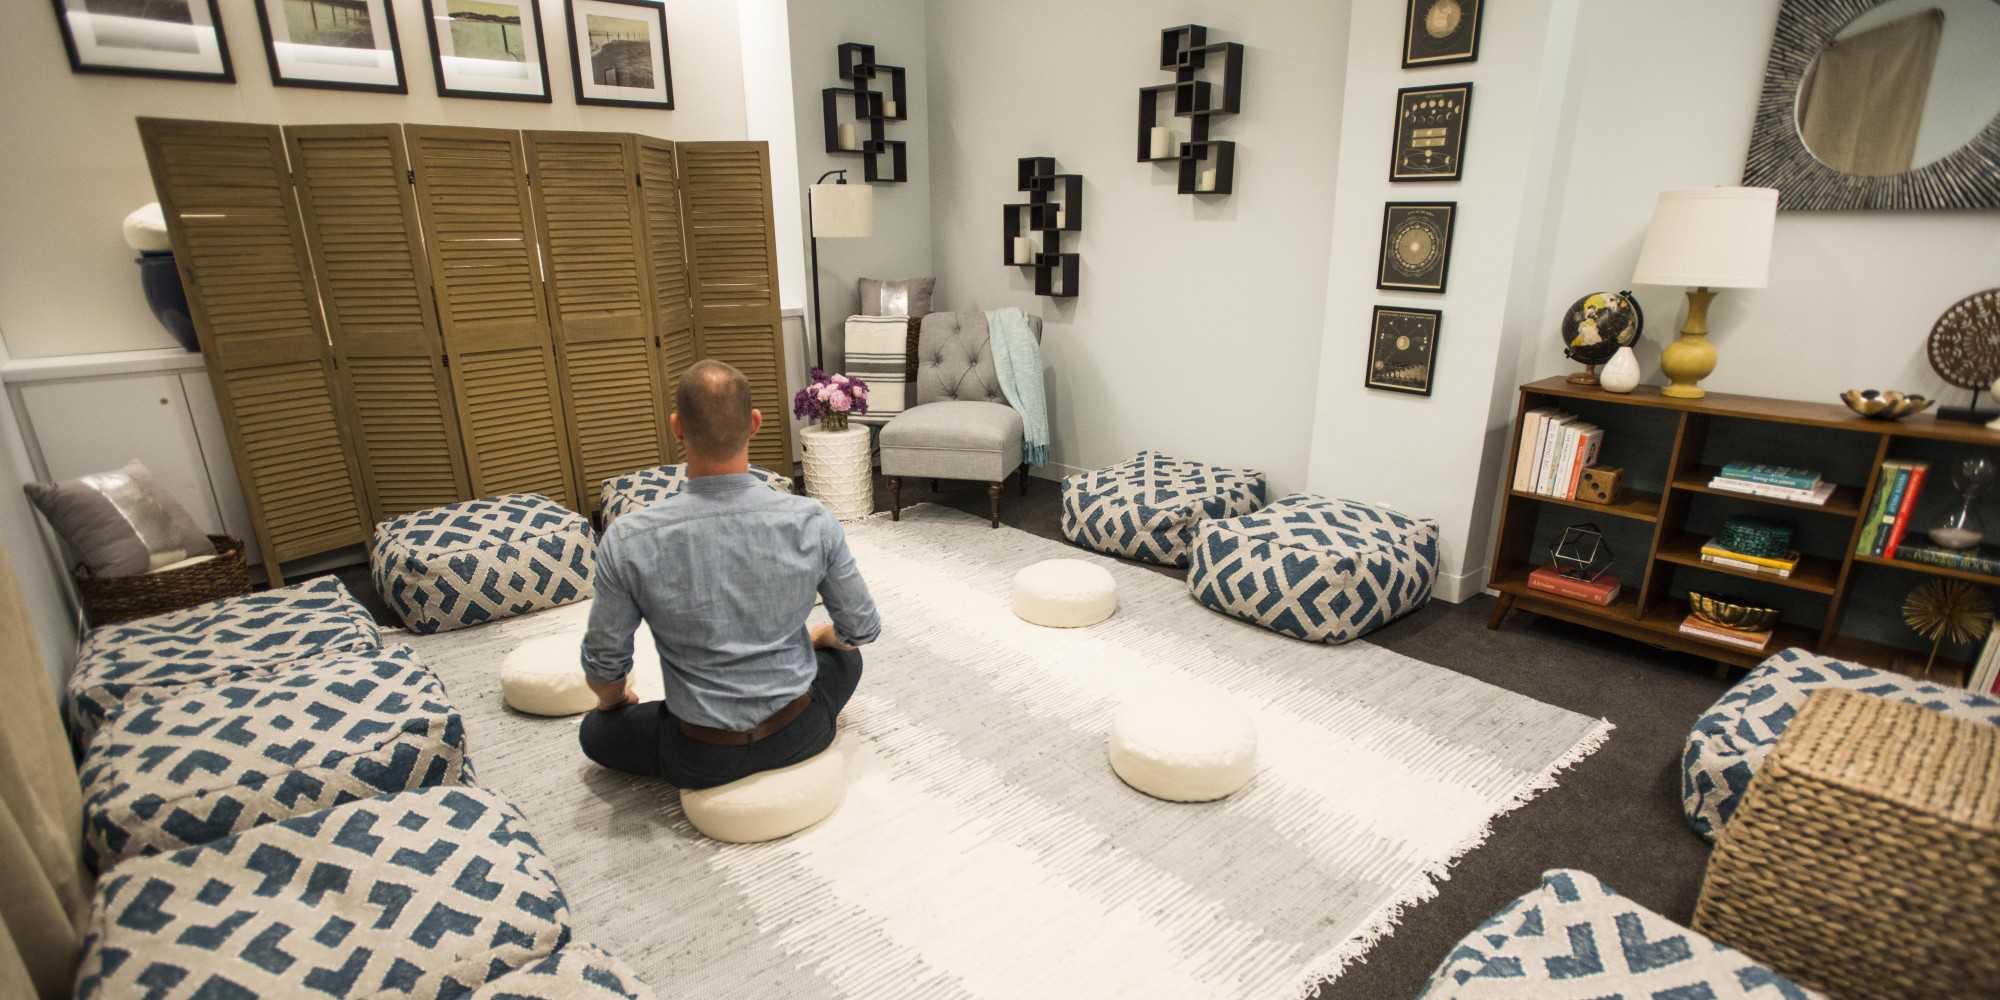 5 Quick Ways To Make Your Home A More Meditative Space Huffpost